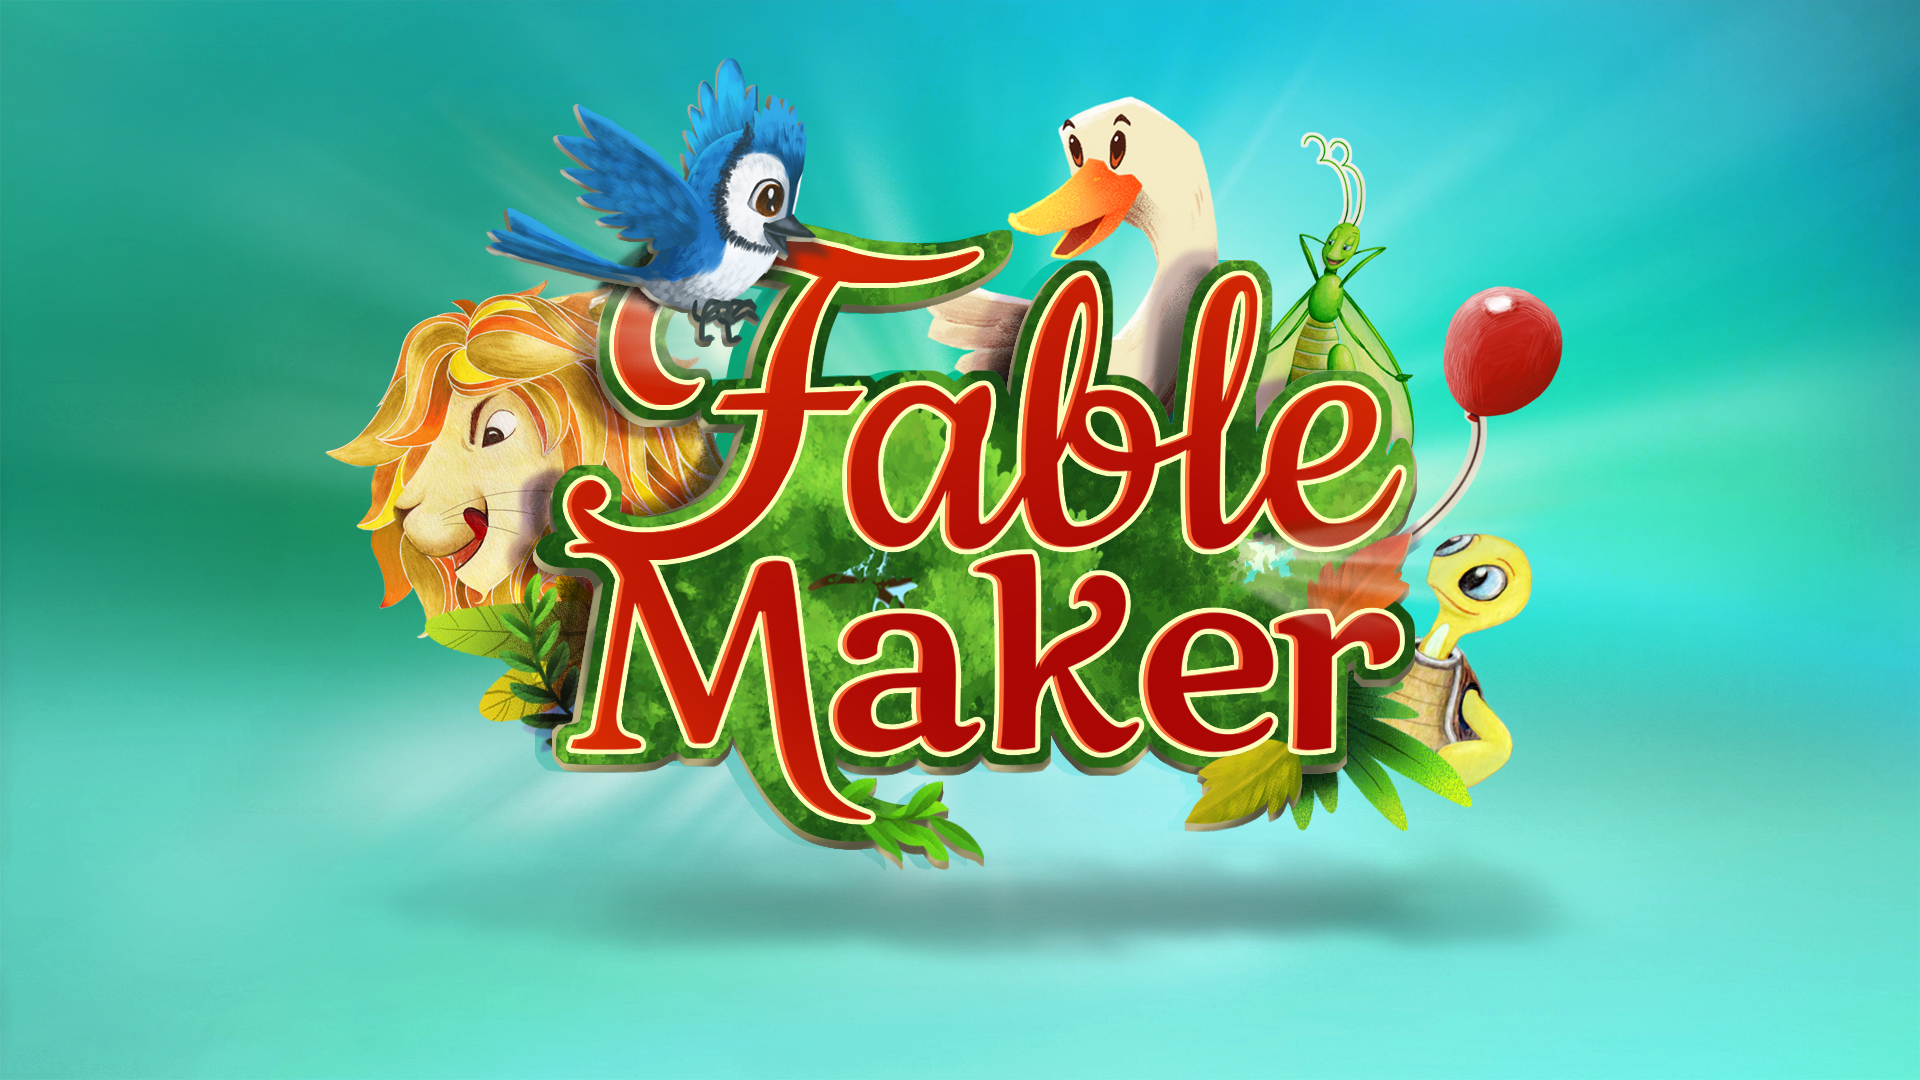 Fablemaker